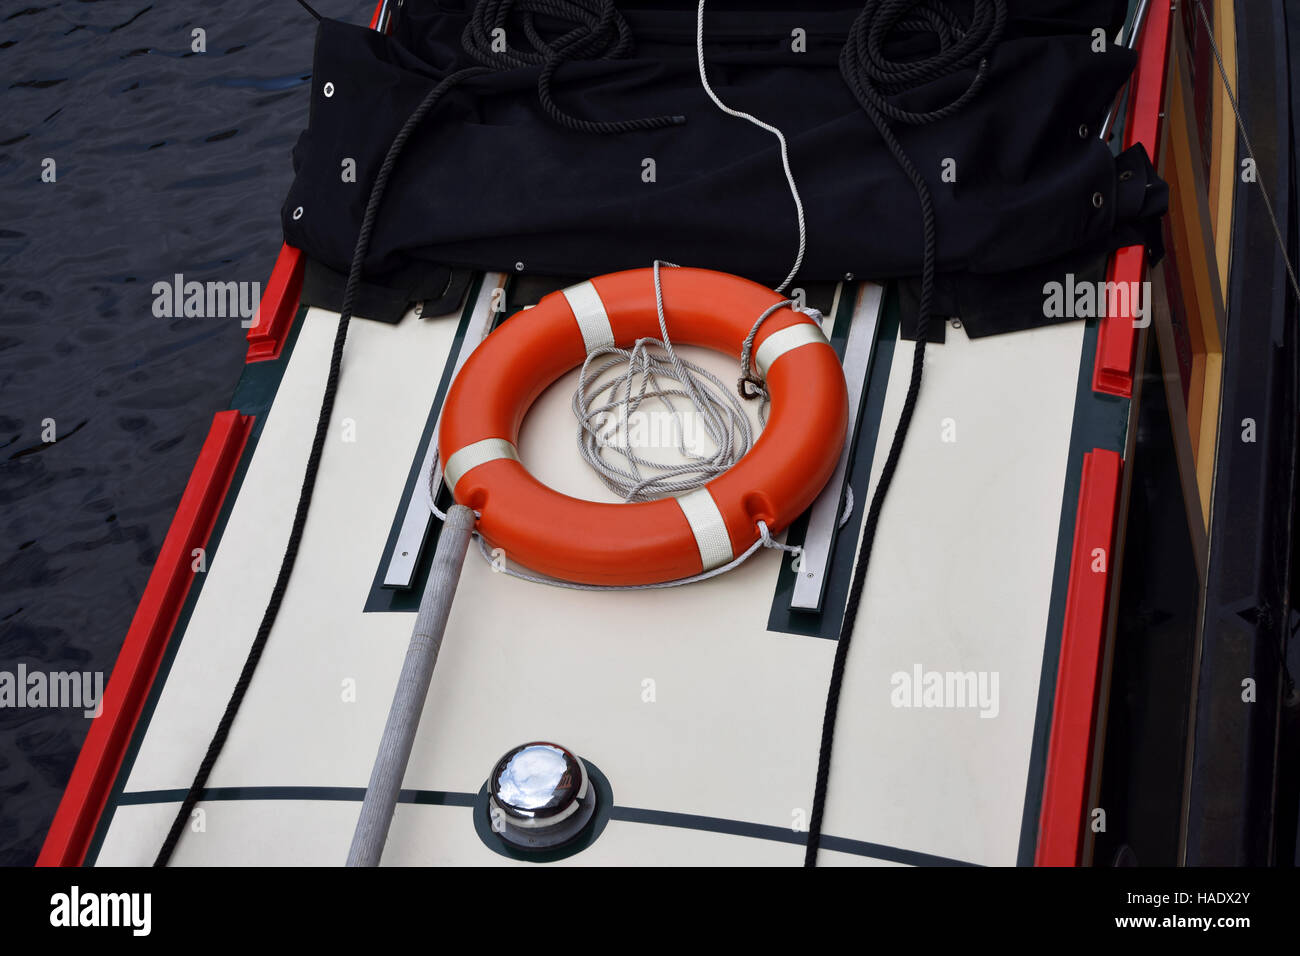 The orange life buoy ring on the boat on the Birmingham old canal - Stock Image